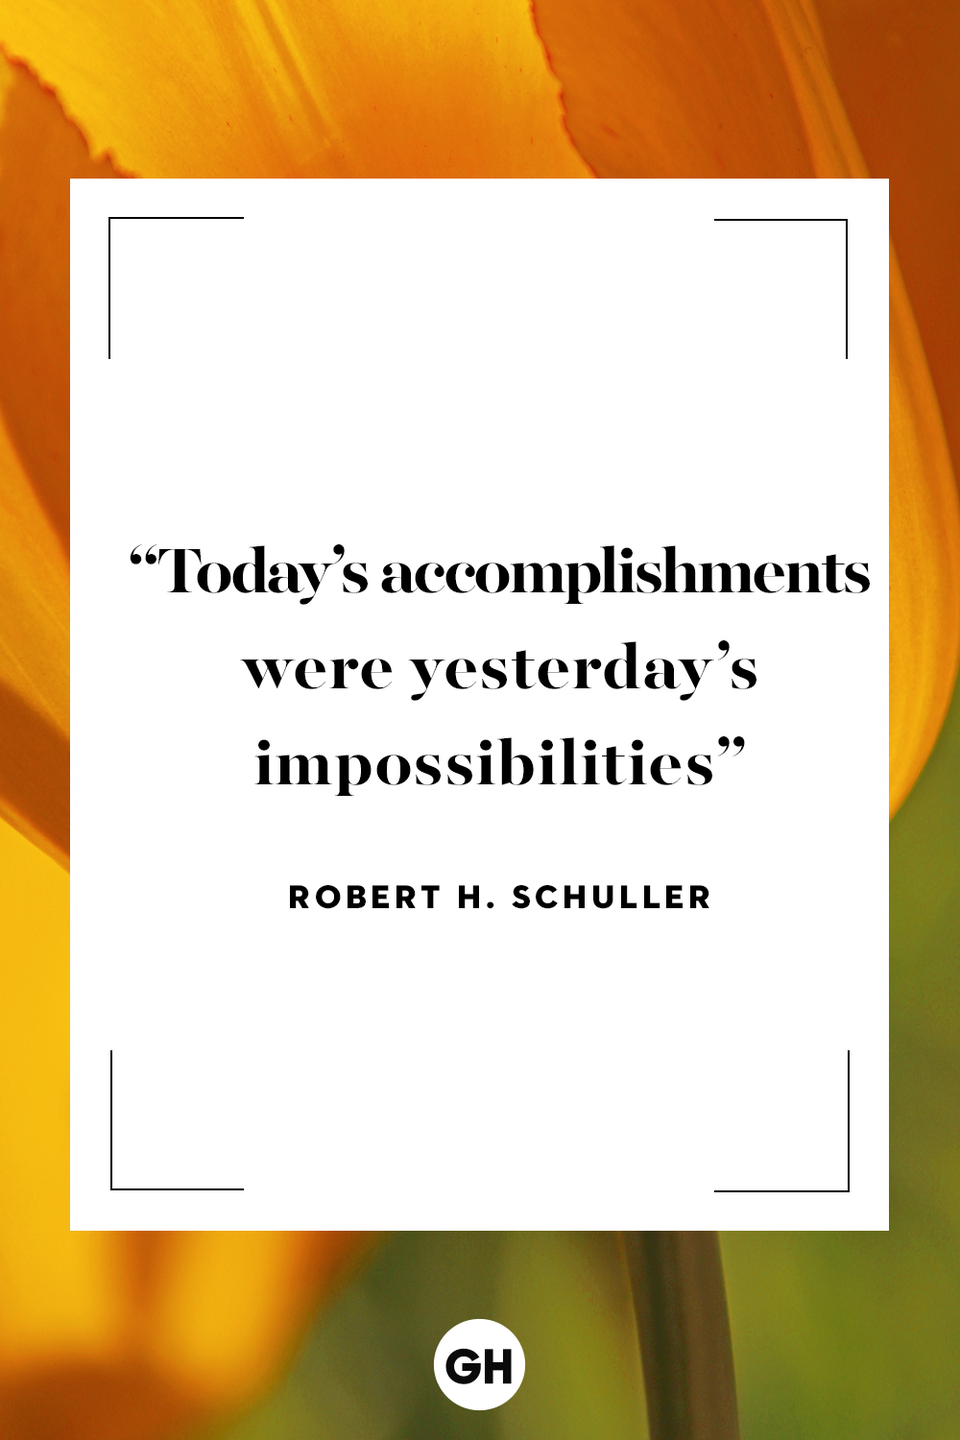 <p>Today's accomplishments were yesterday's impossibilities.</p>